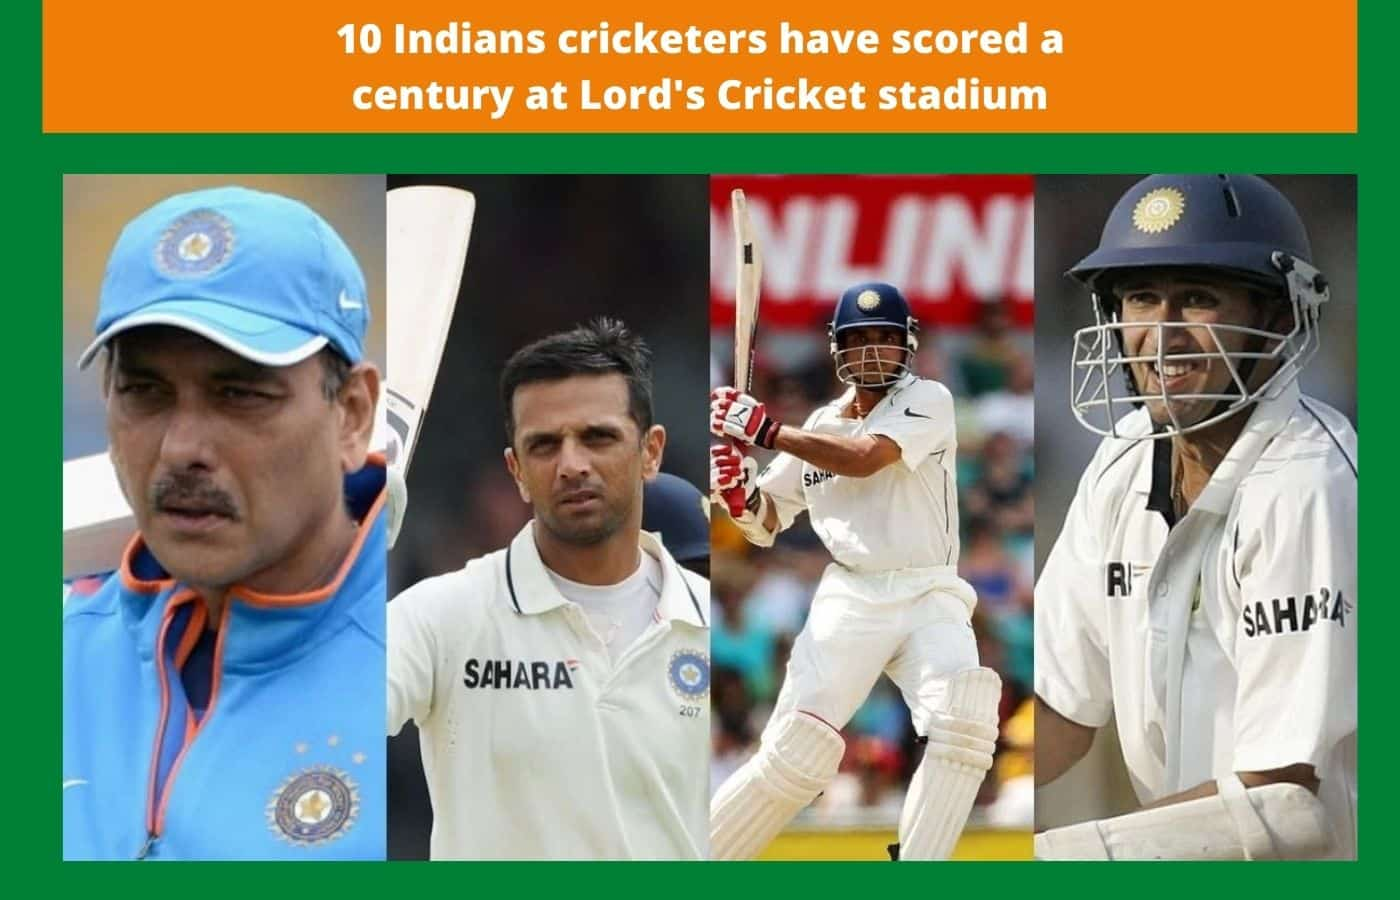 10 Indians cricketers have scored a century at Lord's Cricket stadium